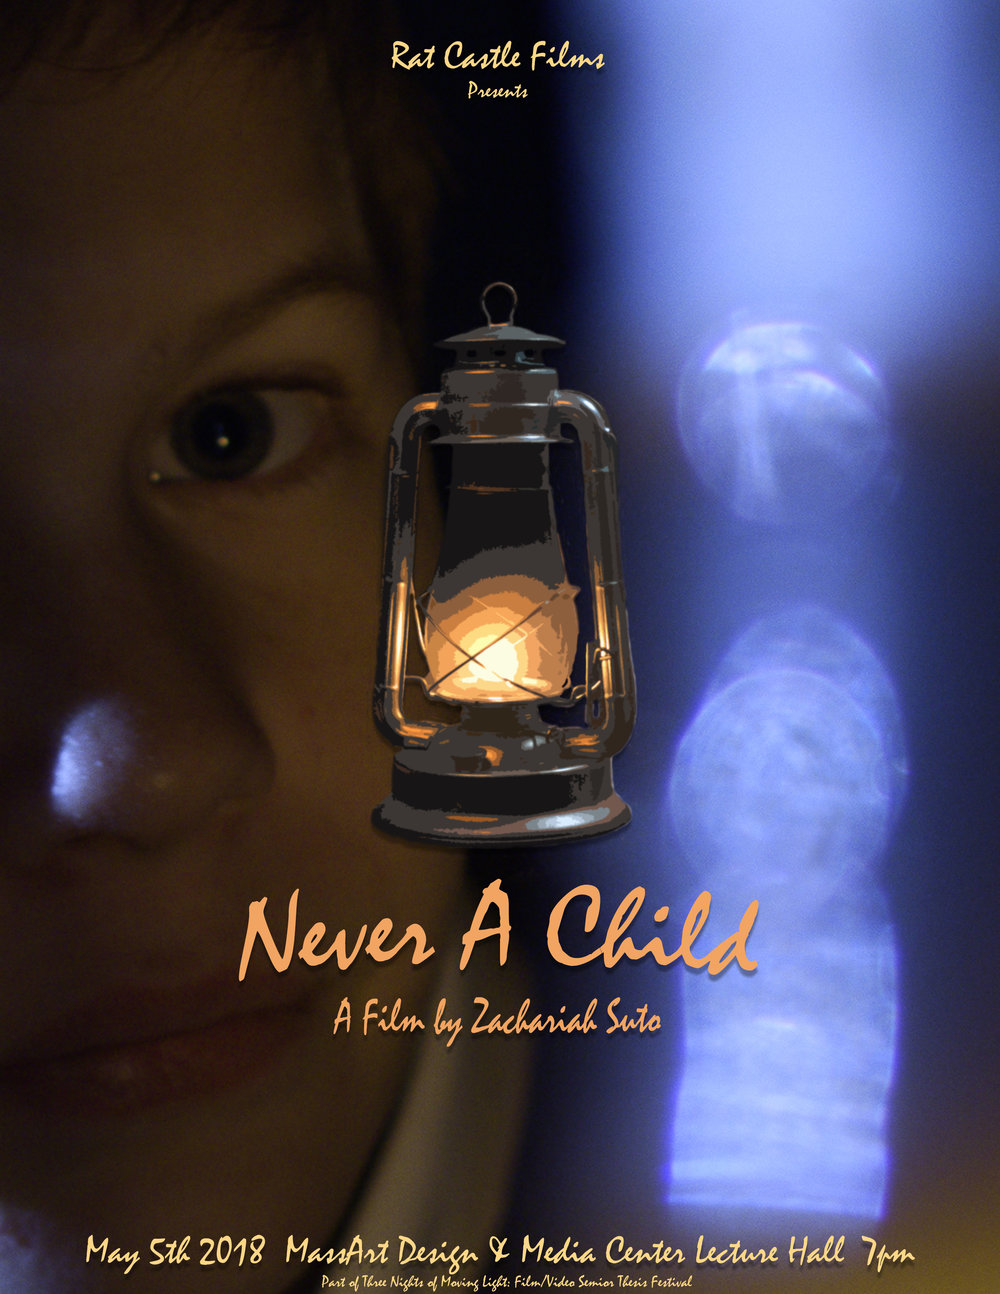 Never A Child Promo Poster.jpg